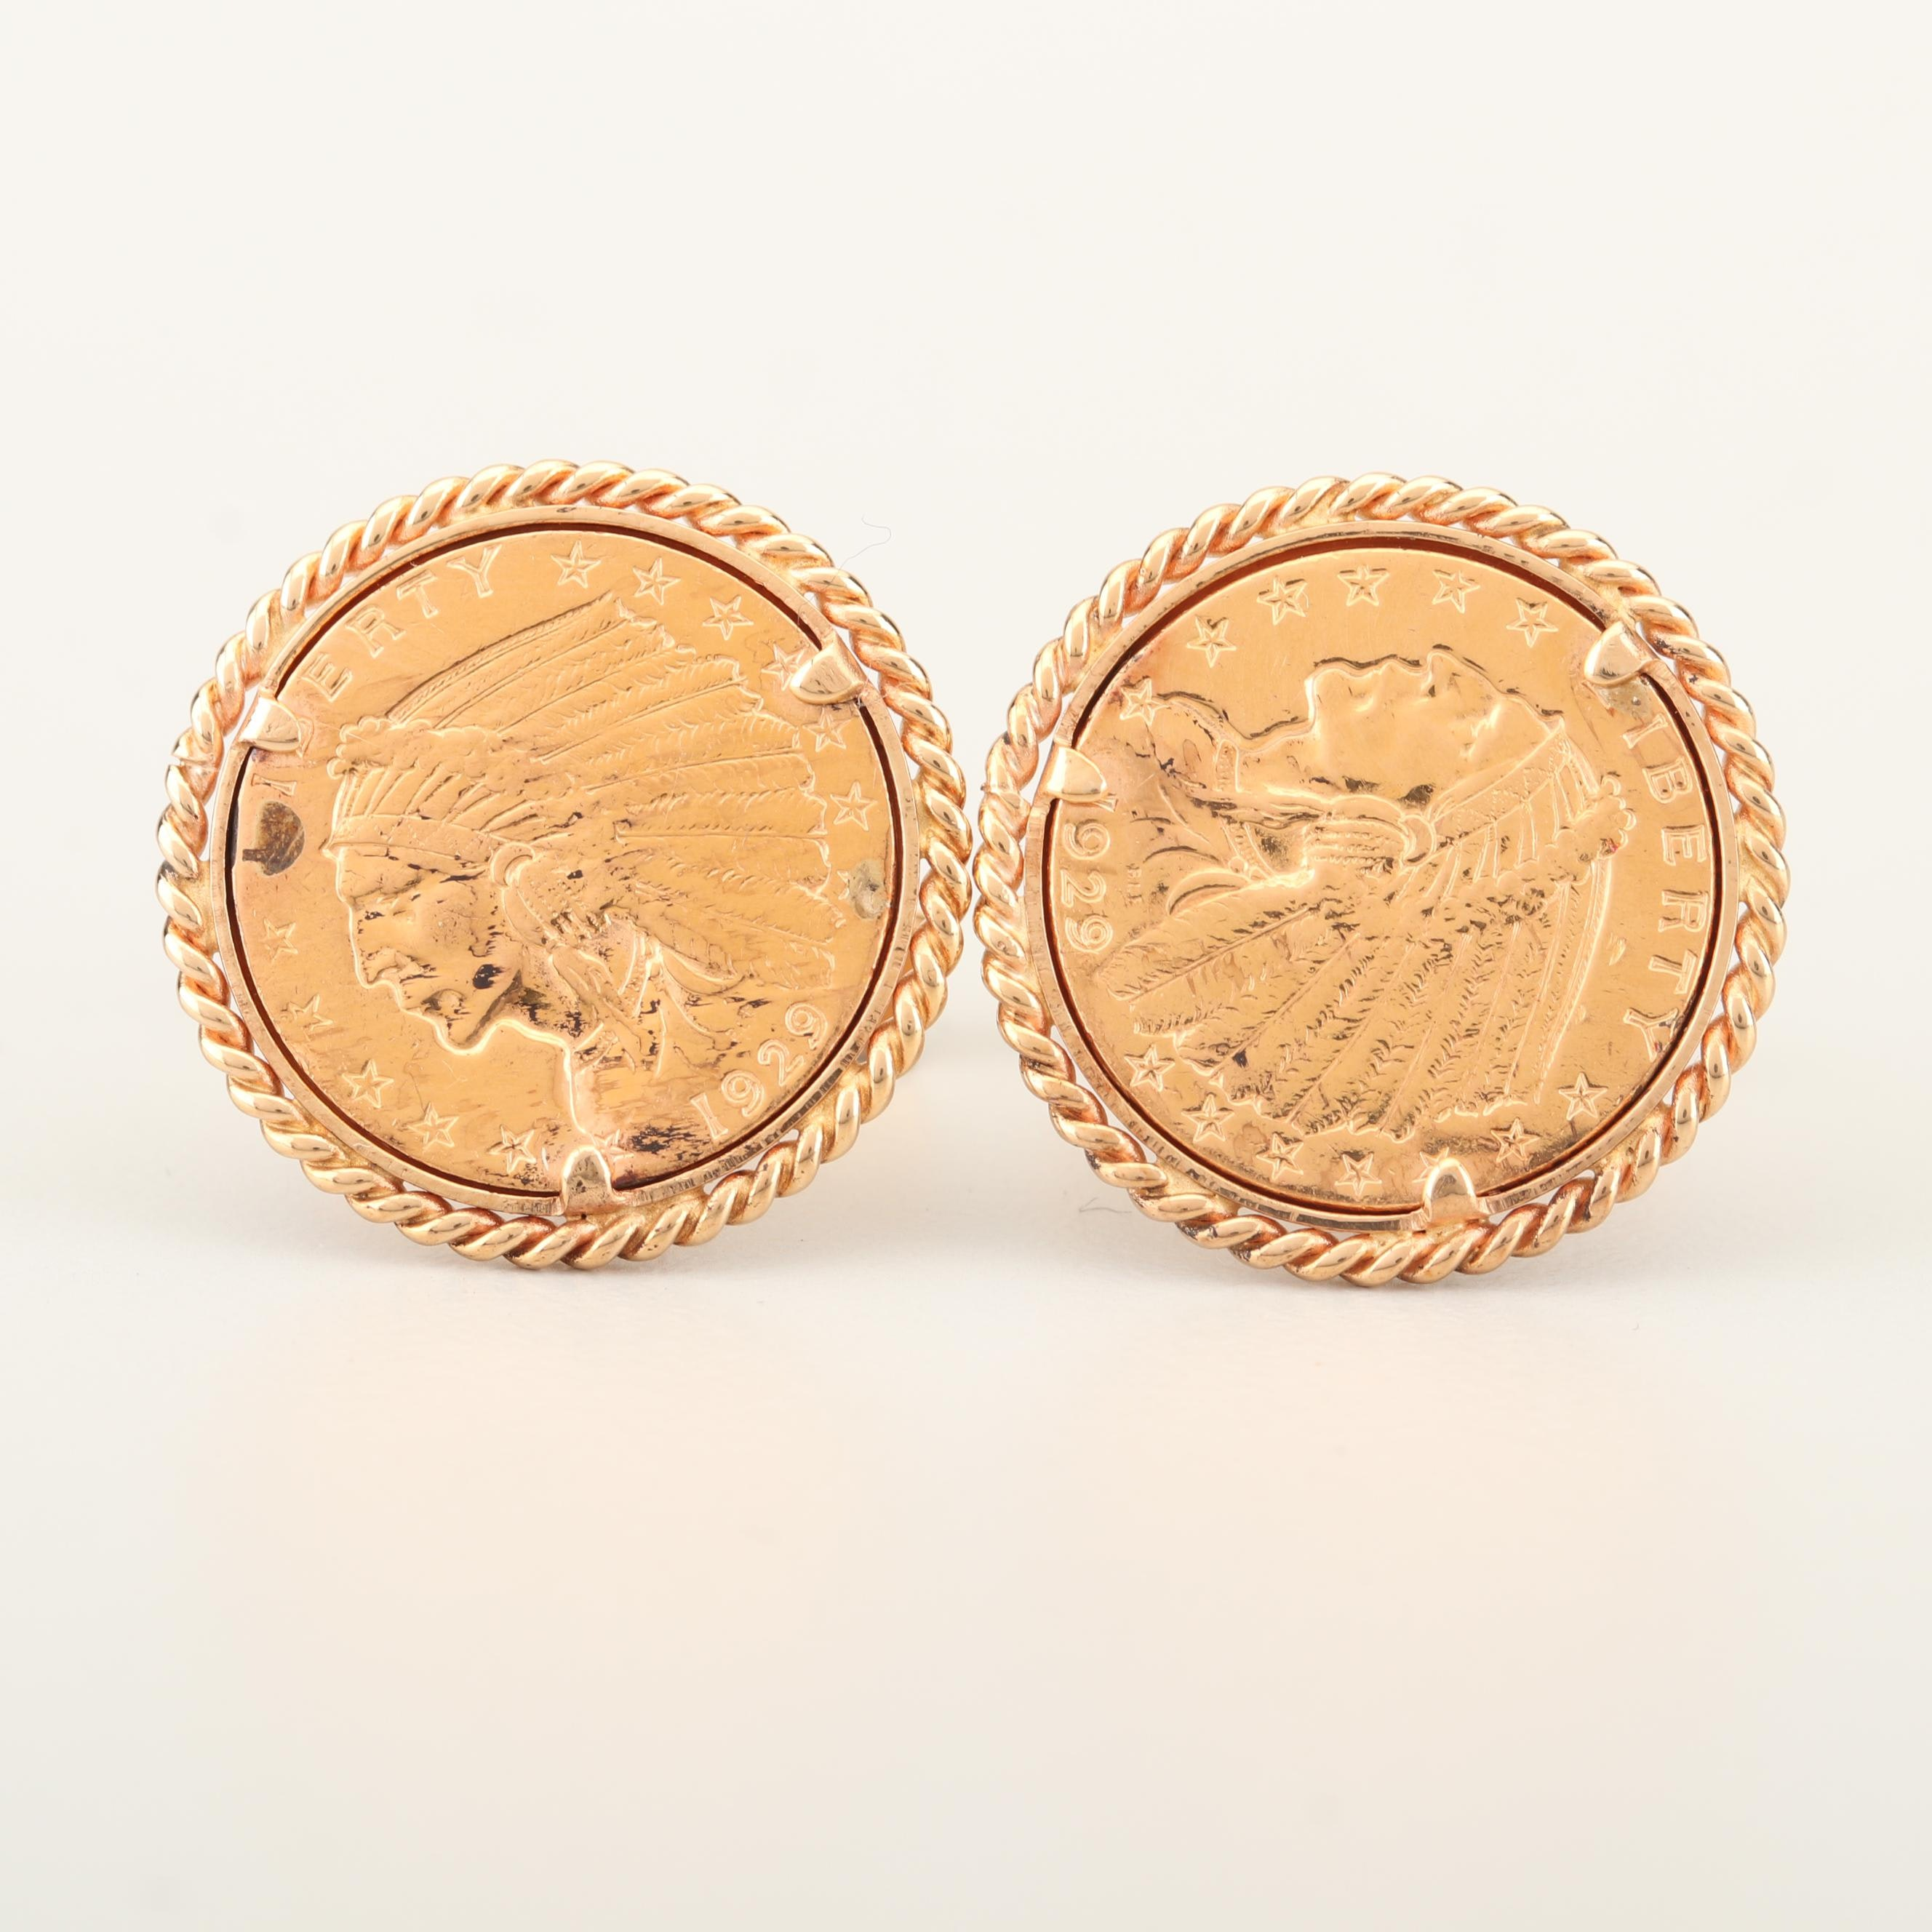 14K Yellow Gold Cufflinks with 1929 Indian Head $2.5 Gold Coins